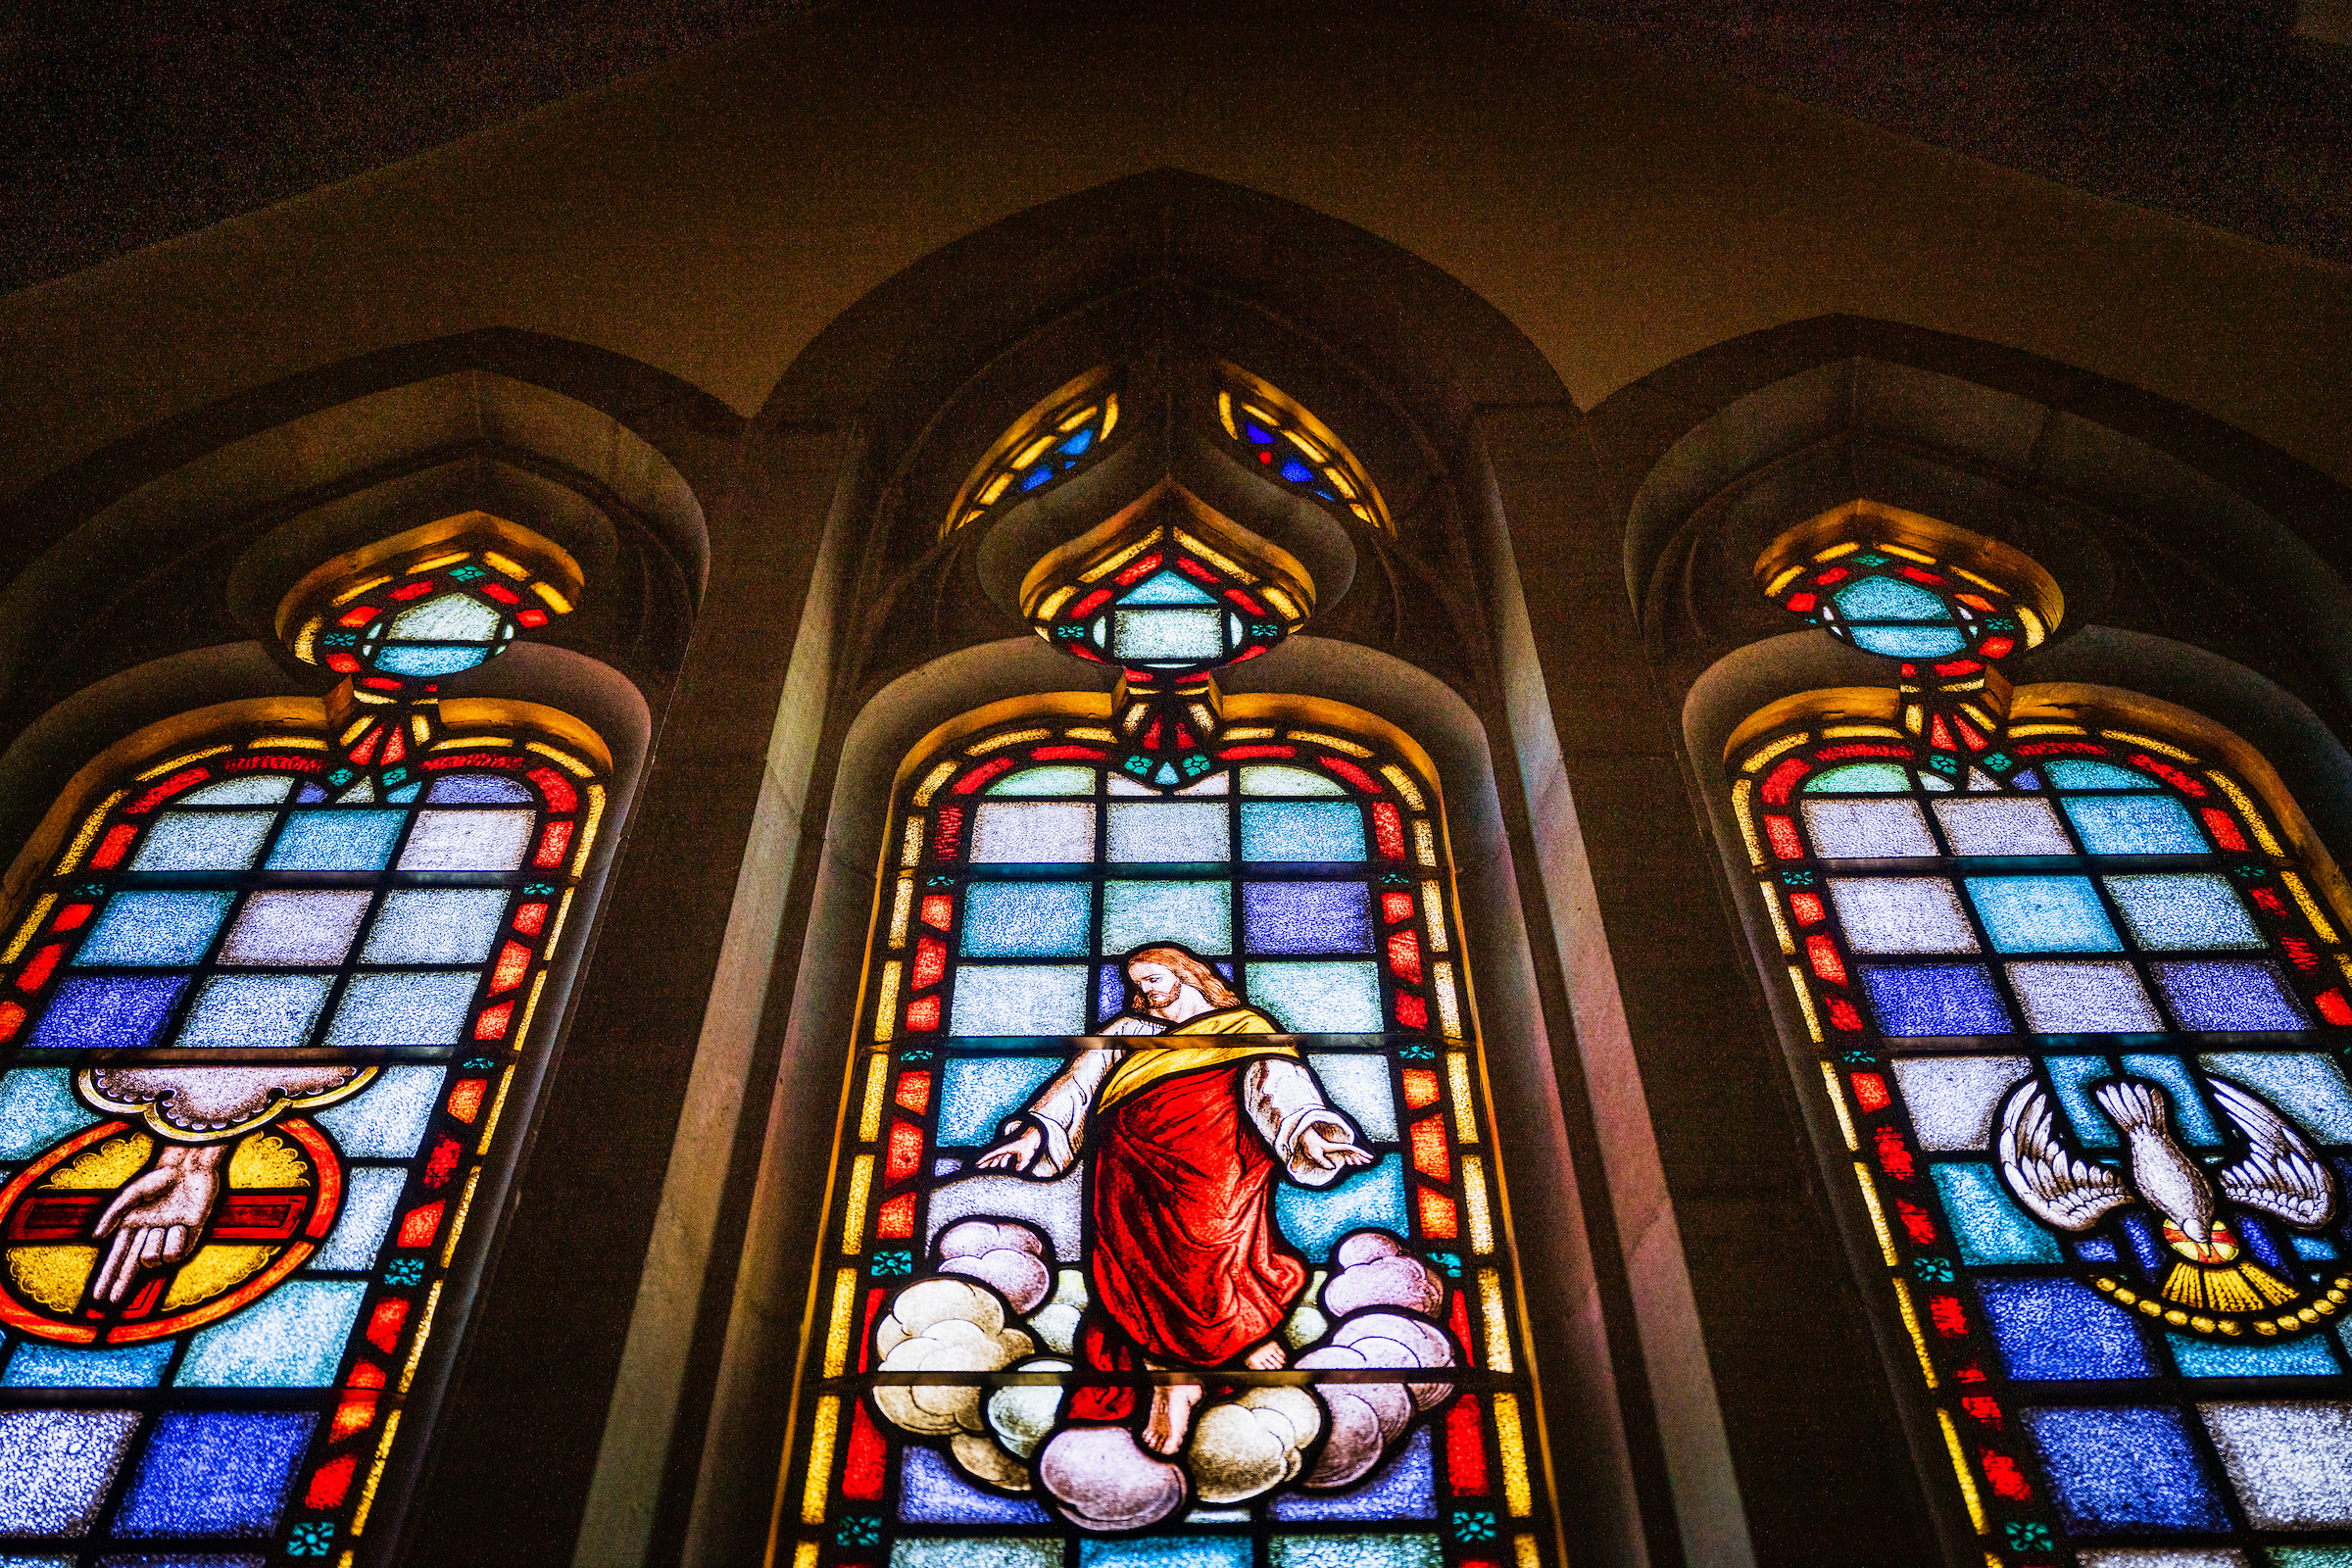 Stained glass depicting the ascension of Jesus Christ (Acts 1) on Thursday, April 30, 2020, at Immanuel Lutheran Church, Olivette, Mo. LCMS Communications/Erik M. Lunsford